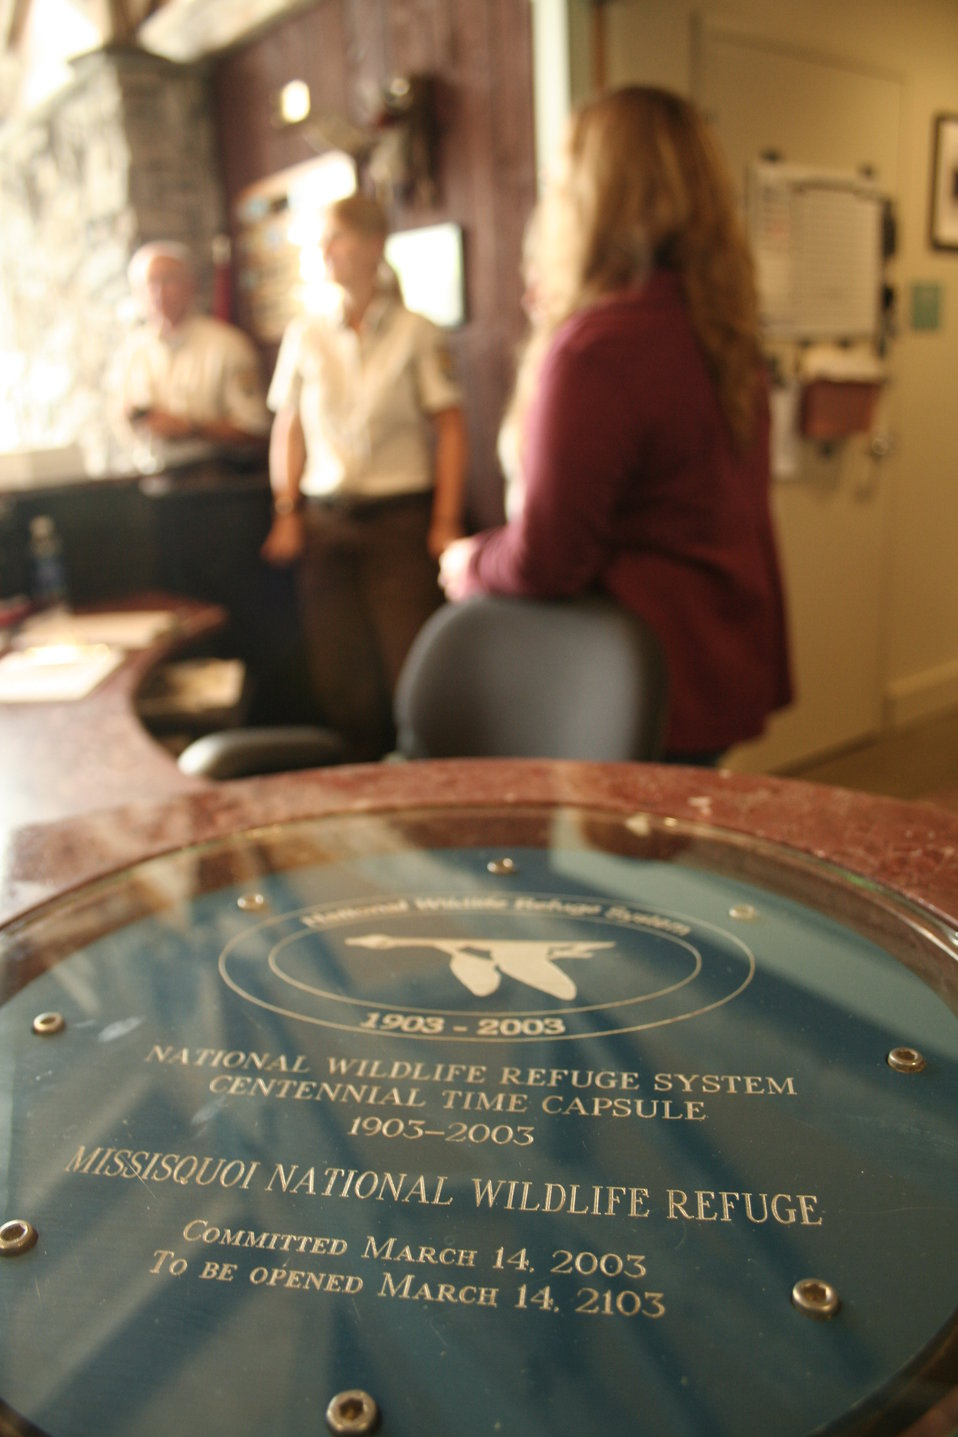 NWRS Centennial time capsule in Missisquoi NWR Visitor Center